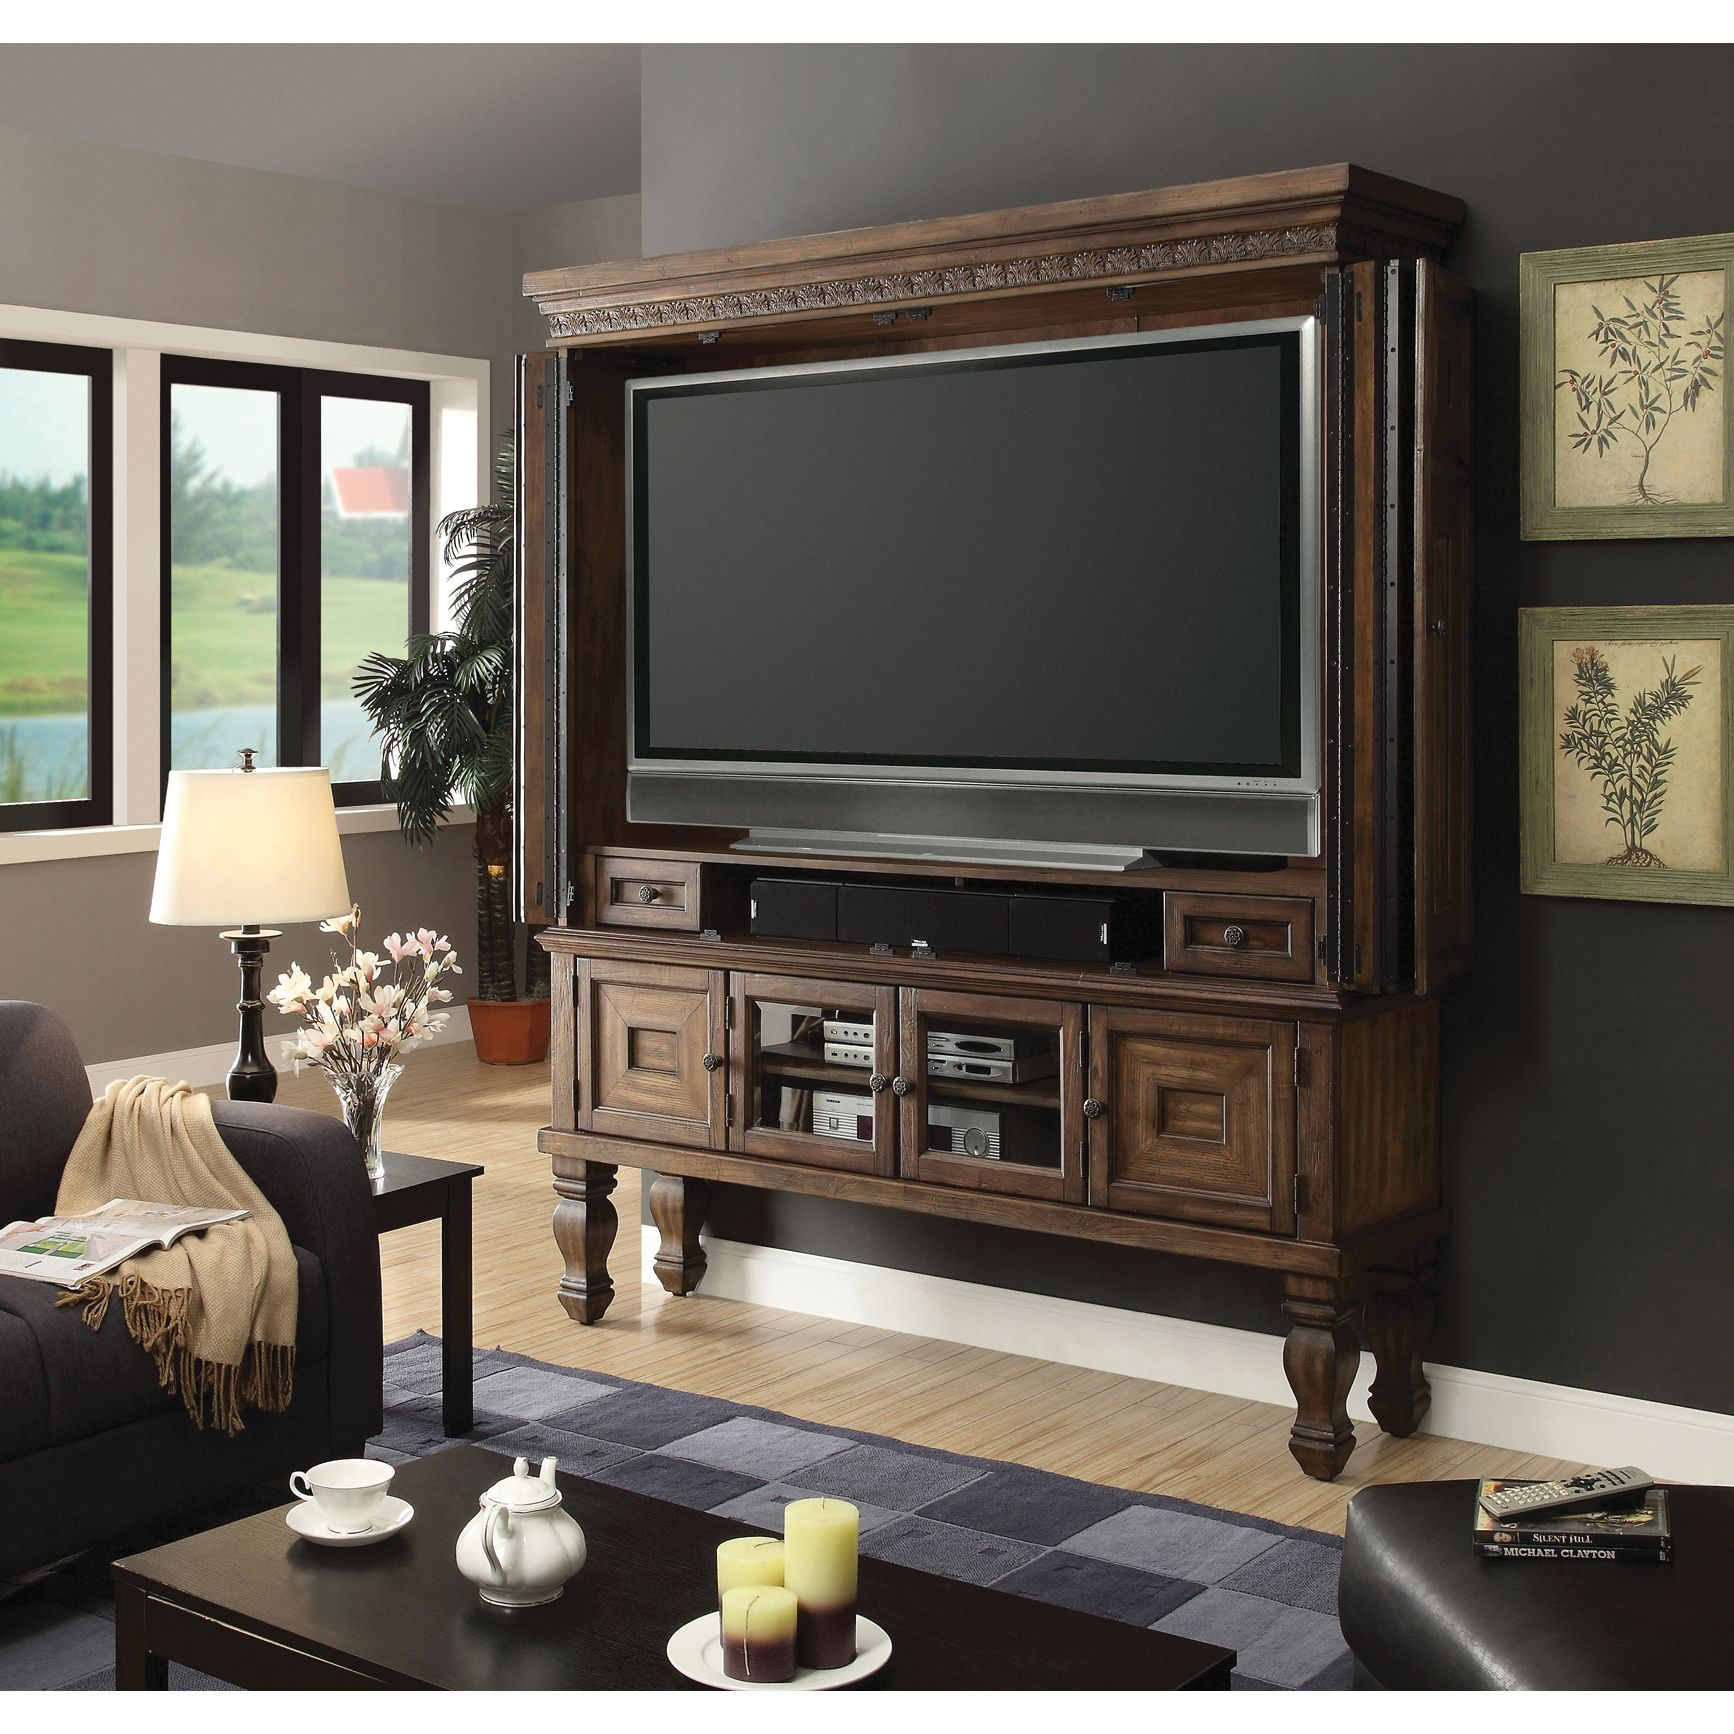 Parker House Aria 75 Inch Entertainment Armoire PHARI60002